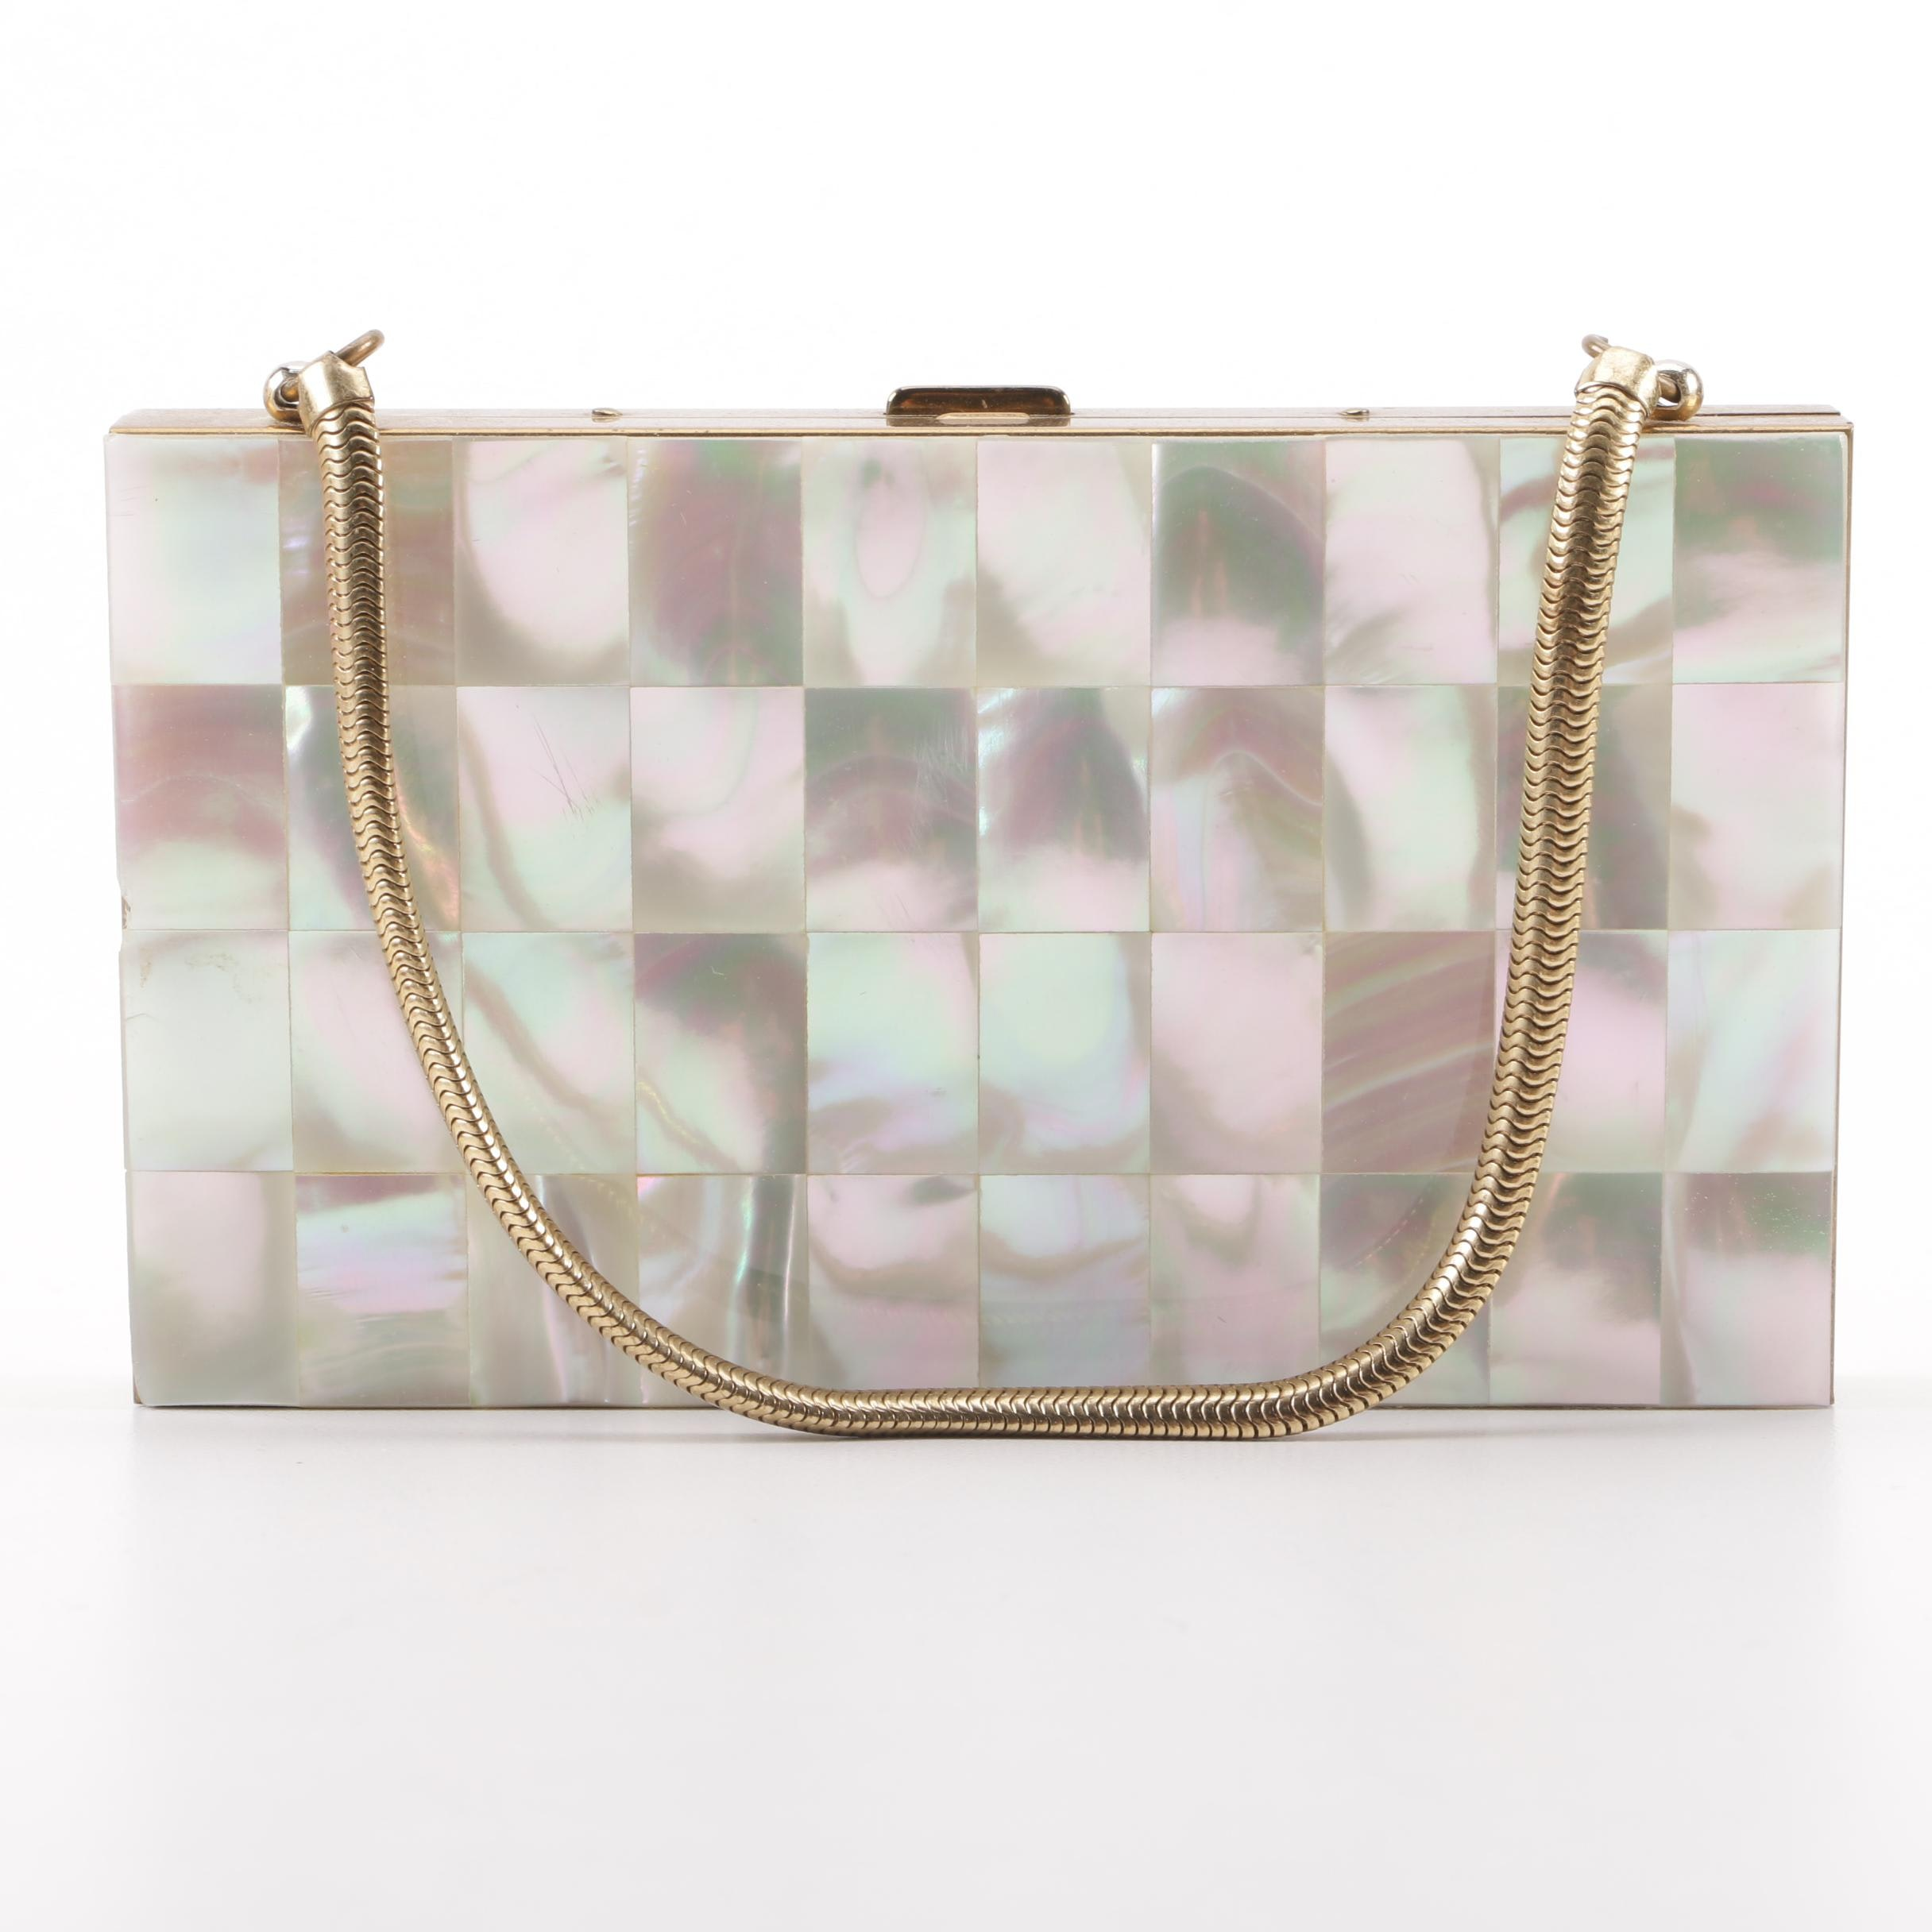 1950s Mother of Pearl Compact Evening Clutch